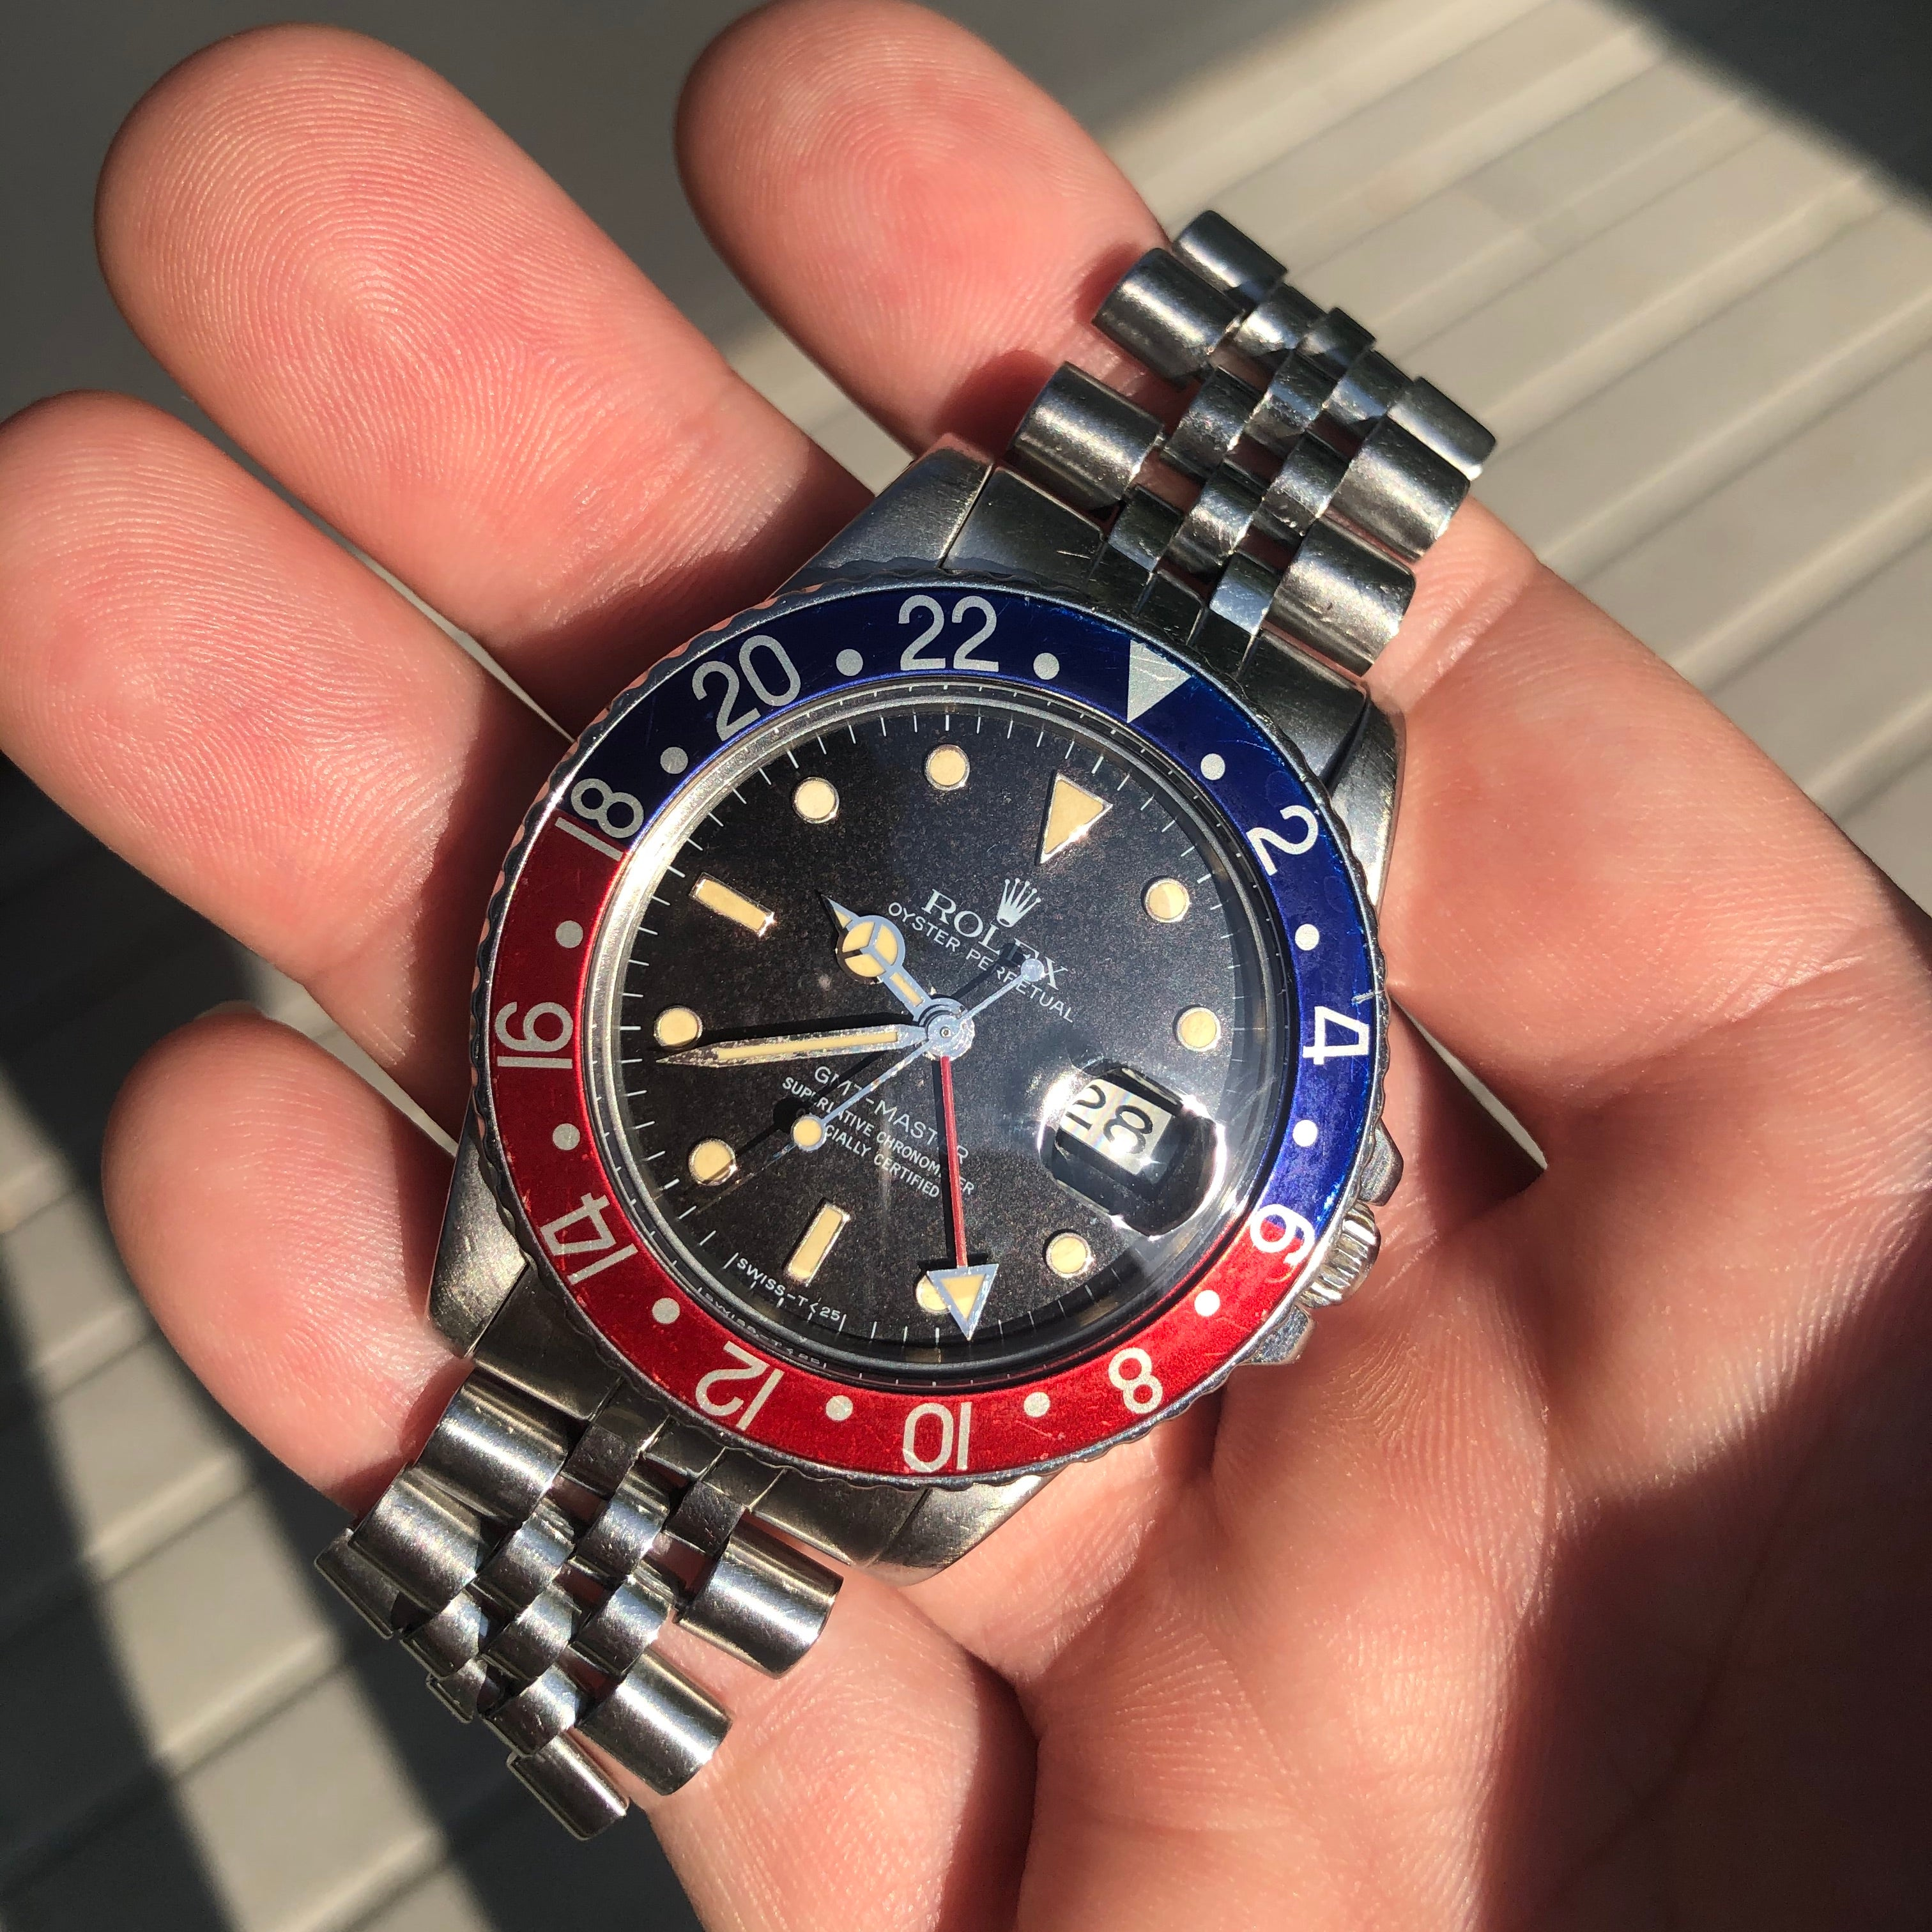 Vintage Rolex GMT MASTER 16750 Pepsi Jubilee Bracelet Wristwatch Circa 1984 - Hashtag Watch Company